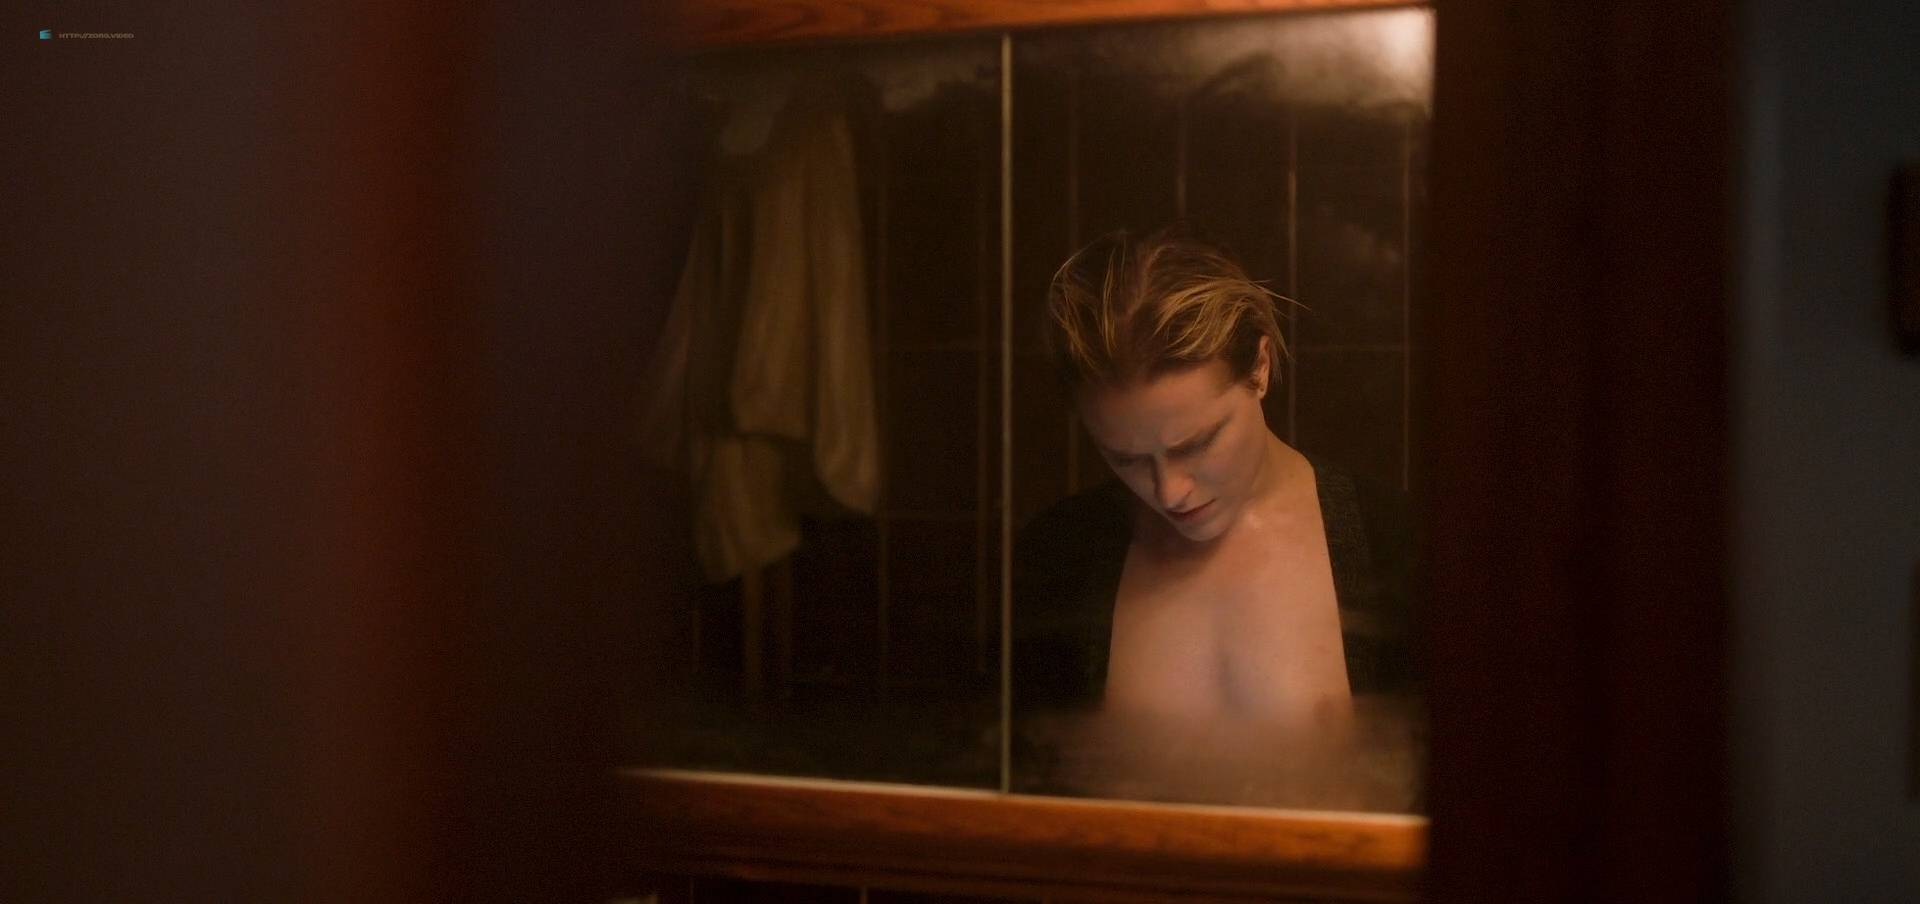 Evan-Rachel-Wood-nude-and-rough-sex-and-Julia-Sarah-Stone-hot-in-scenes-Allure-2017-HD-1080p-Web-007.jpg